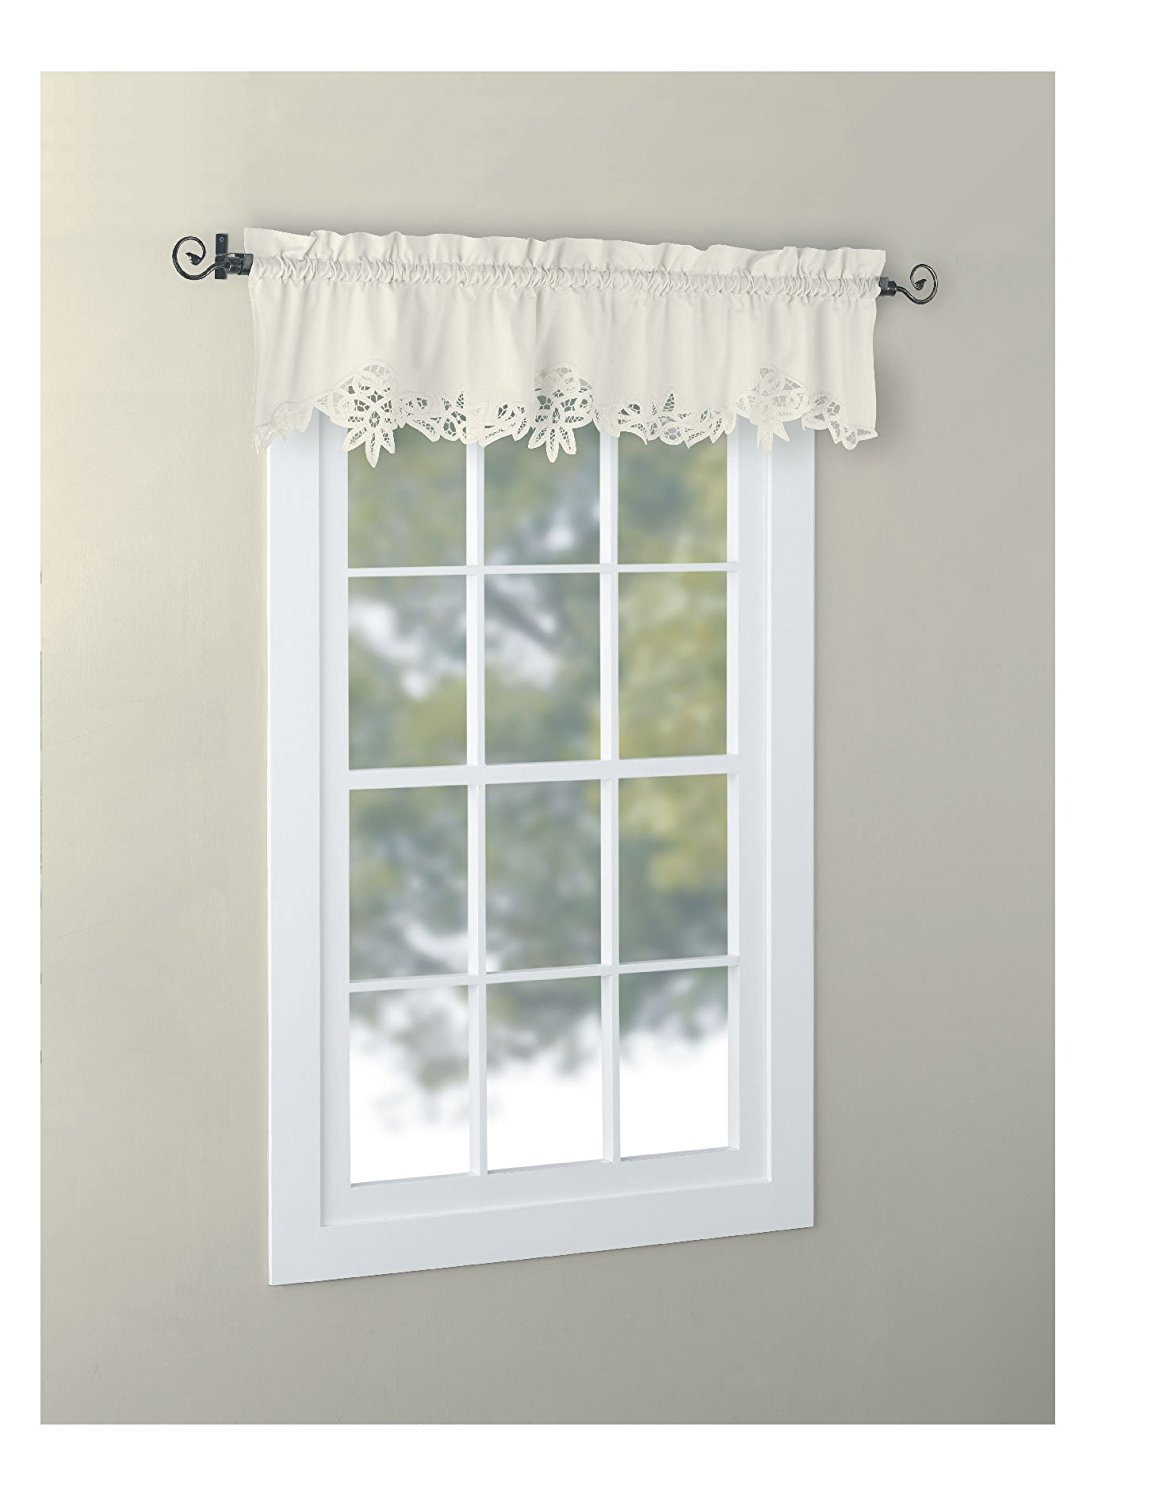 Buy Euphoriahome Battenburg Lace Kitchen Curtain Valance Swags Tiers White 24 L In Cheap Price On Alibaba Com